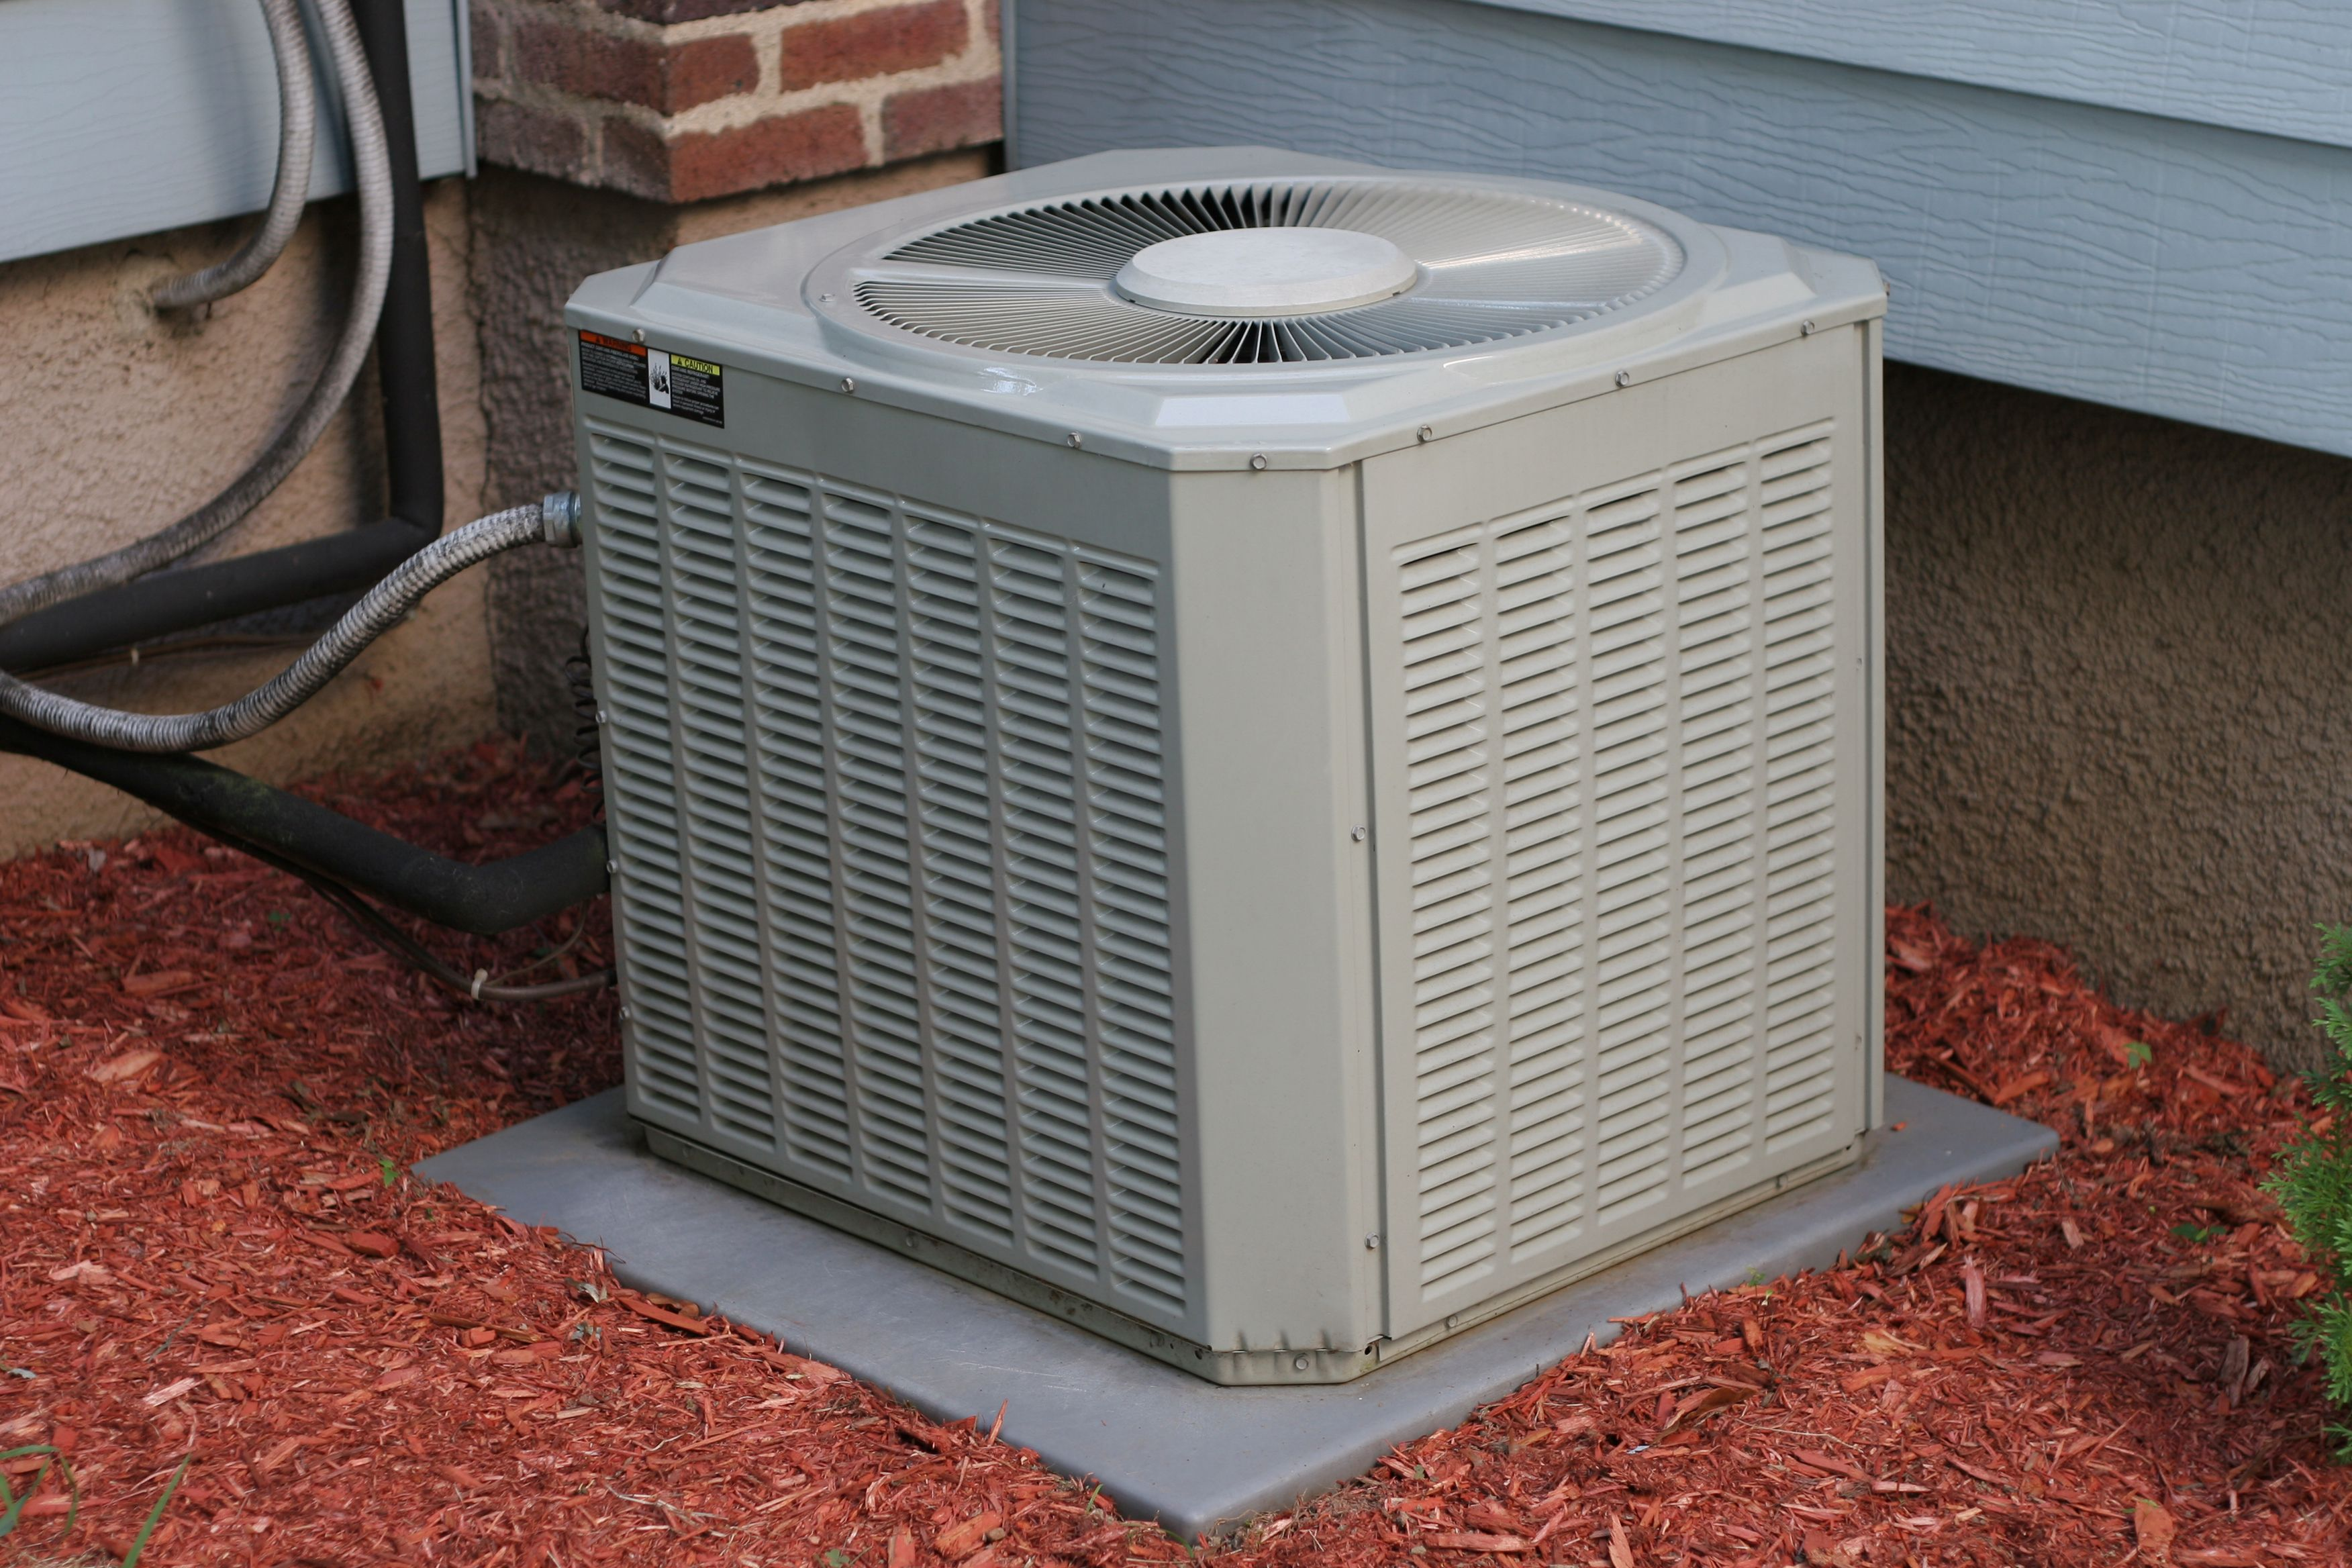 Diy Airco 13 Genius Ways To Hide An Ugly Ac Unit How To Hide An Ugly Ac Unit